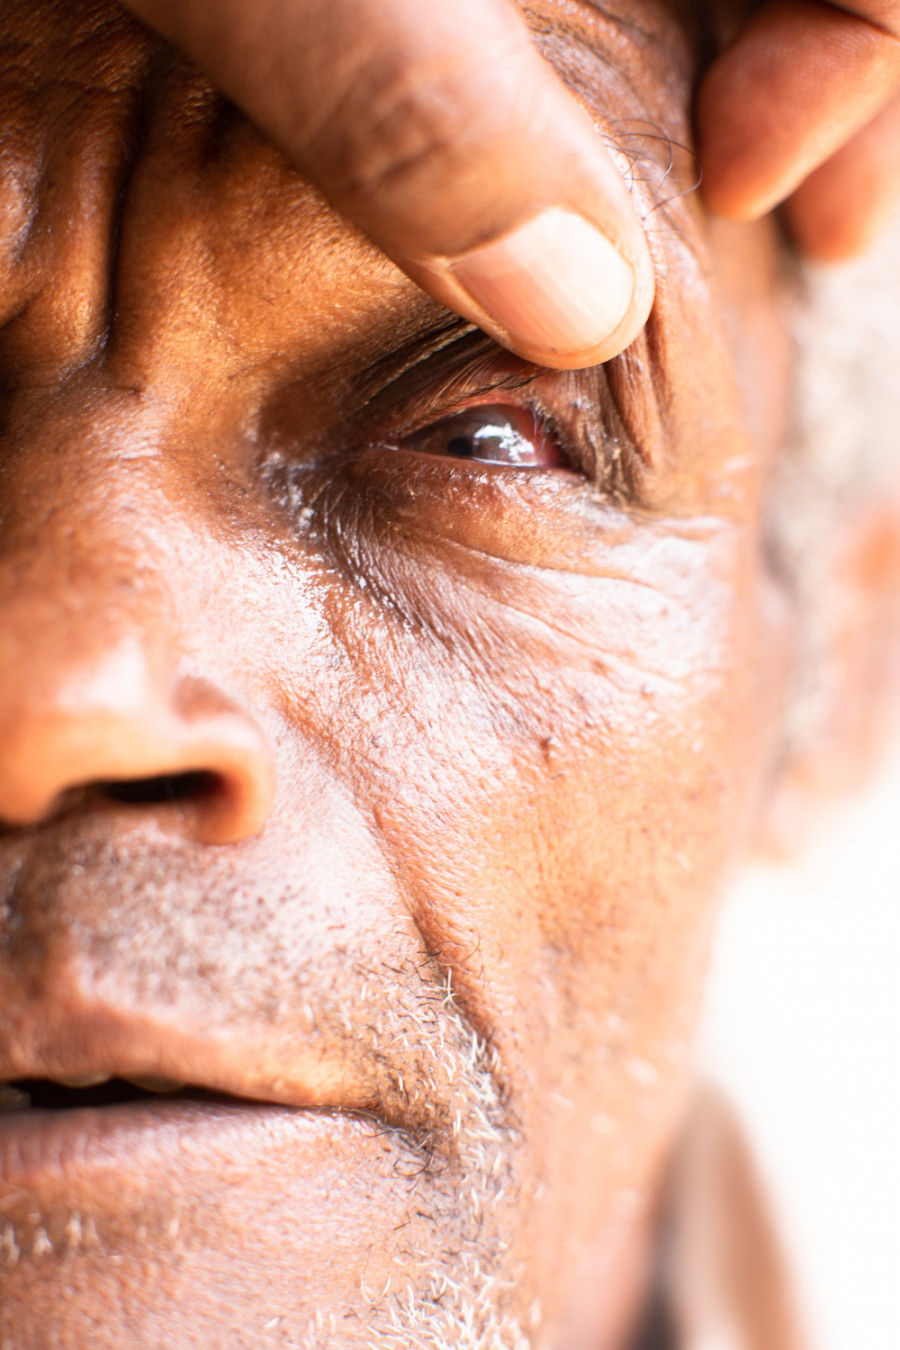 Thumbnail for Orbis and Trachoma in Ethiopia